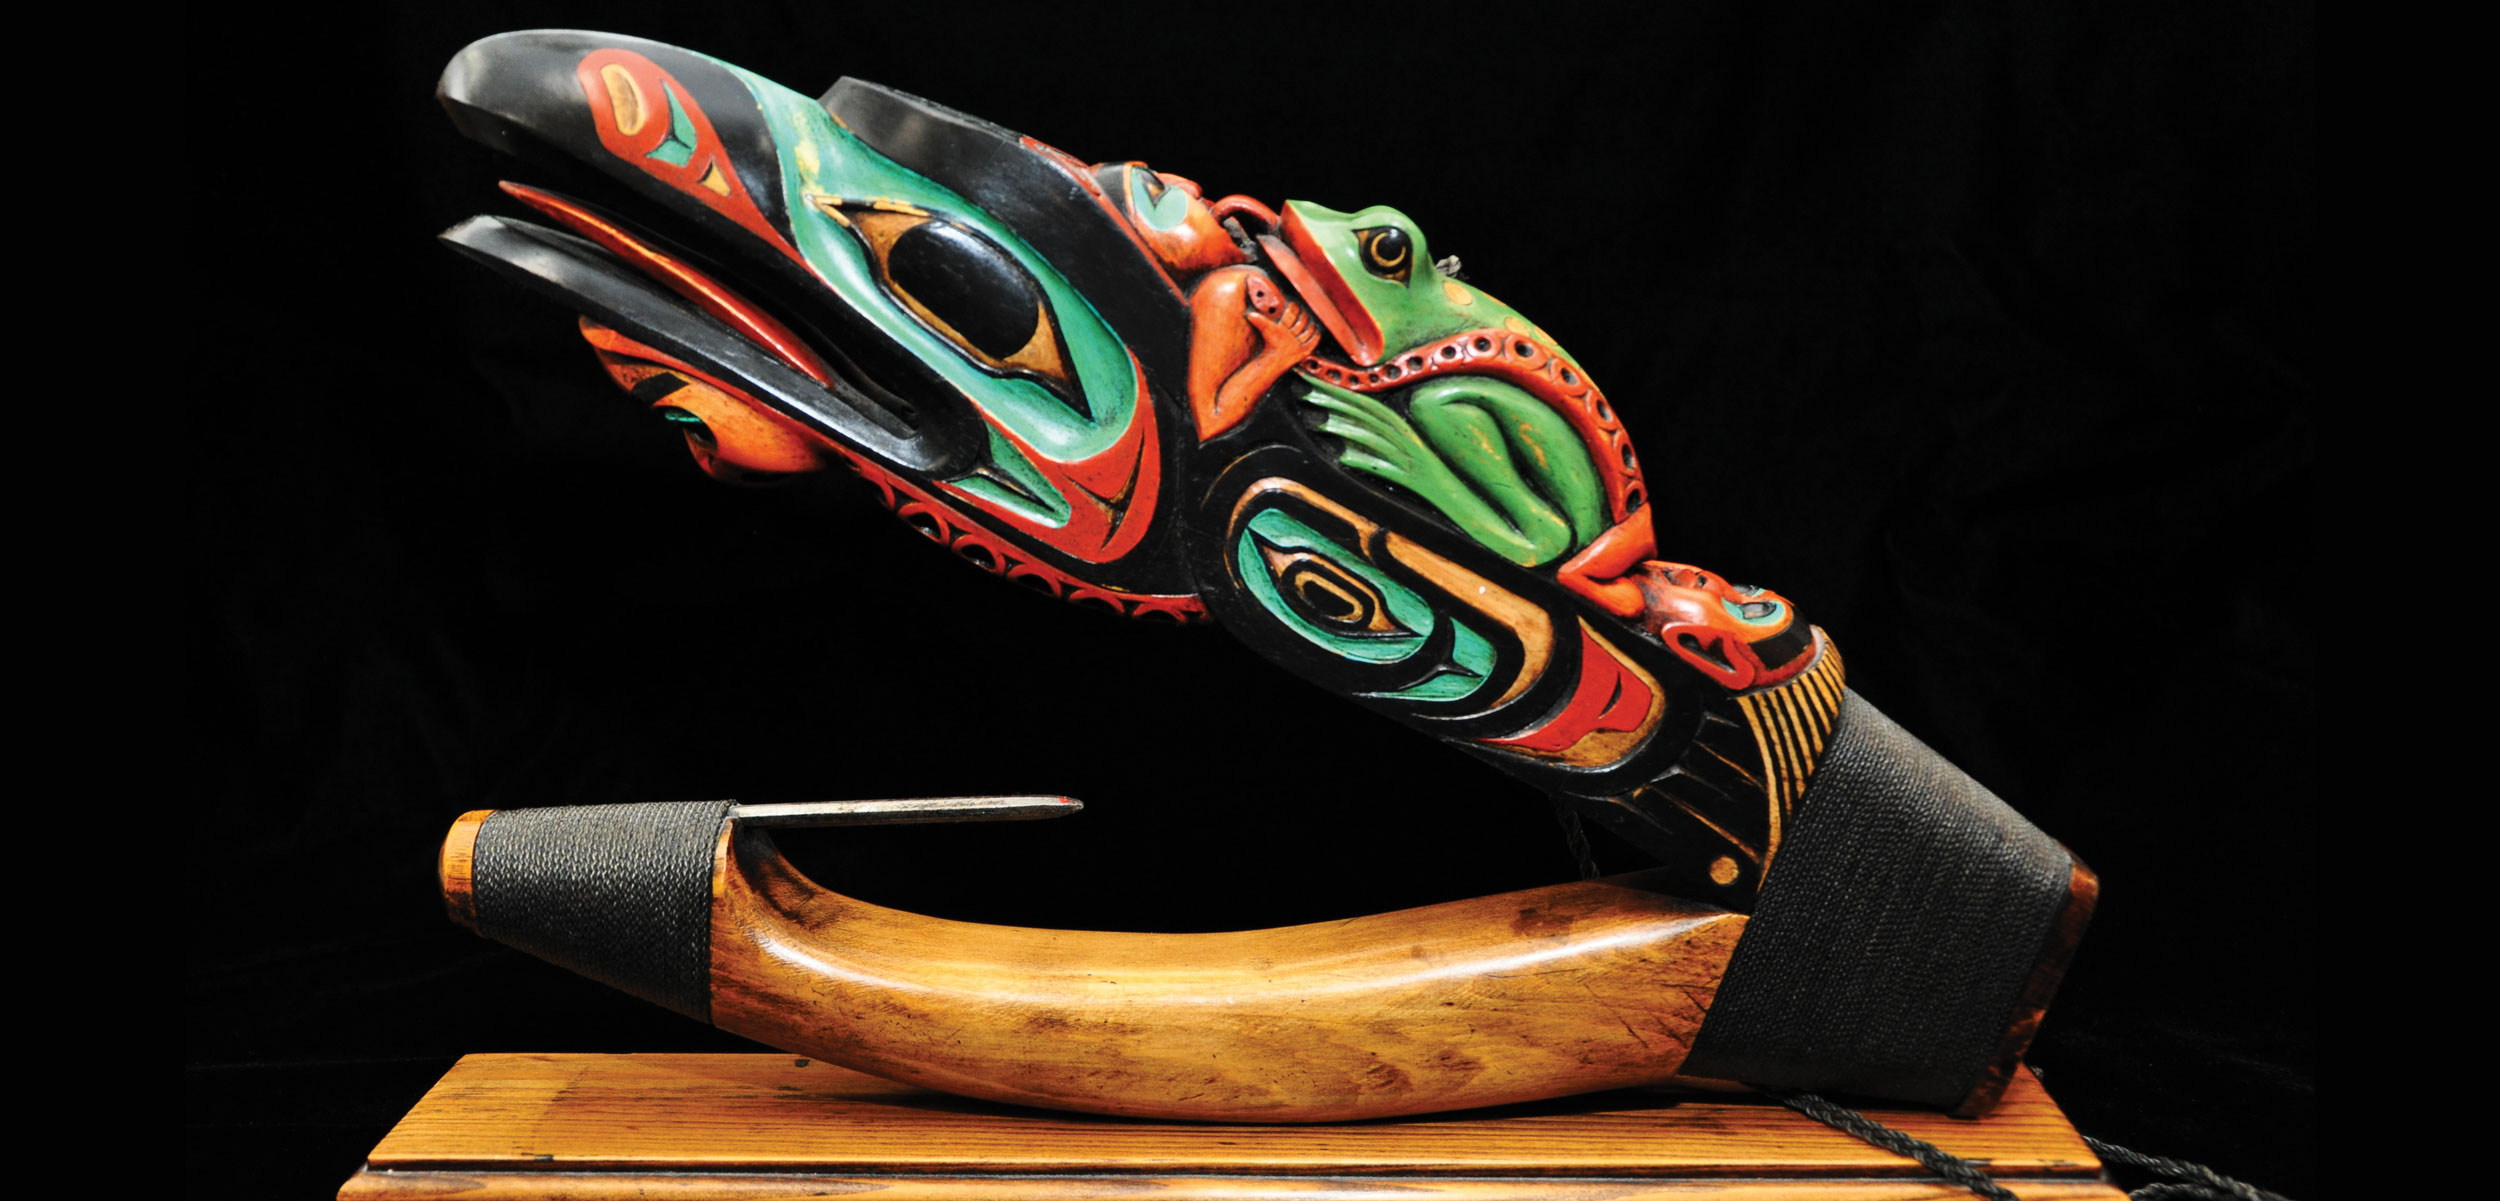 Tlingit artist Arthur B. Nelson's Devil Fish Halibut Hook, 2012, is an impressive example of a contemporary wooden halibut hook designed to be a piece of art rather than a functional example of halibut fishing equipment. The carving depicts raven, frog, octopus, and human spirits. Photo by Kathy Dye, courtesy of Sealaska Heritage Institute